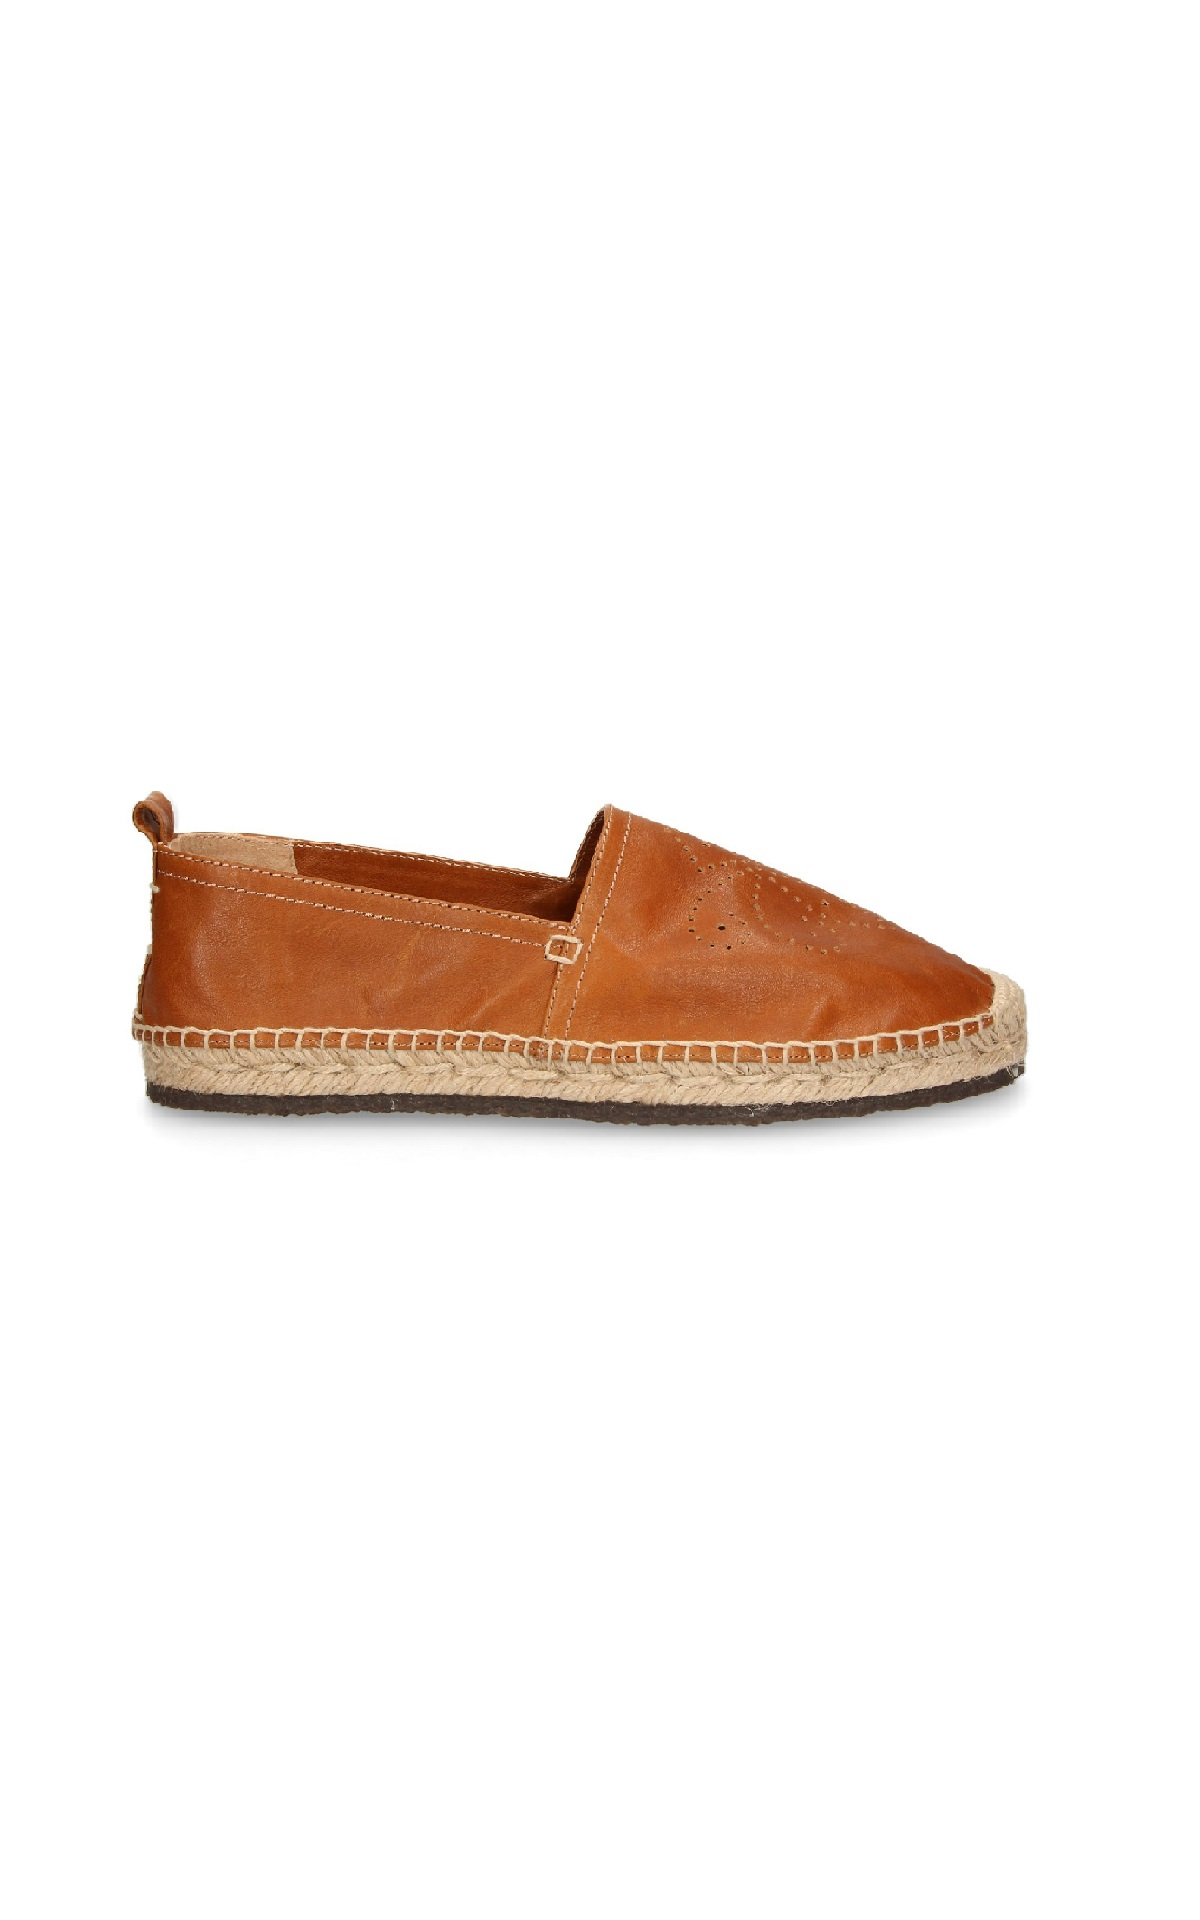 Brown leather espadrille Lottusse